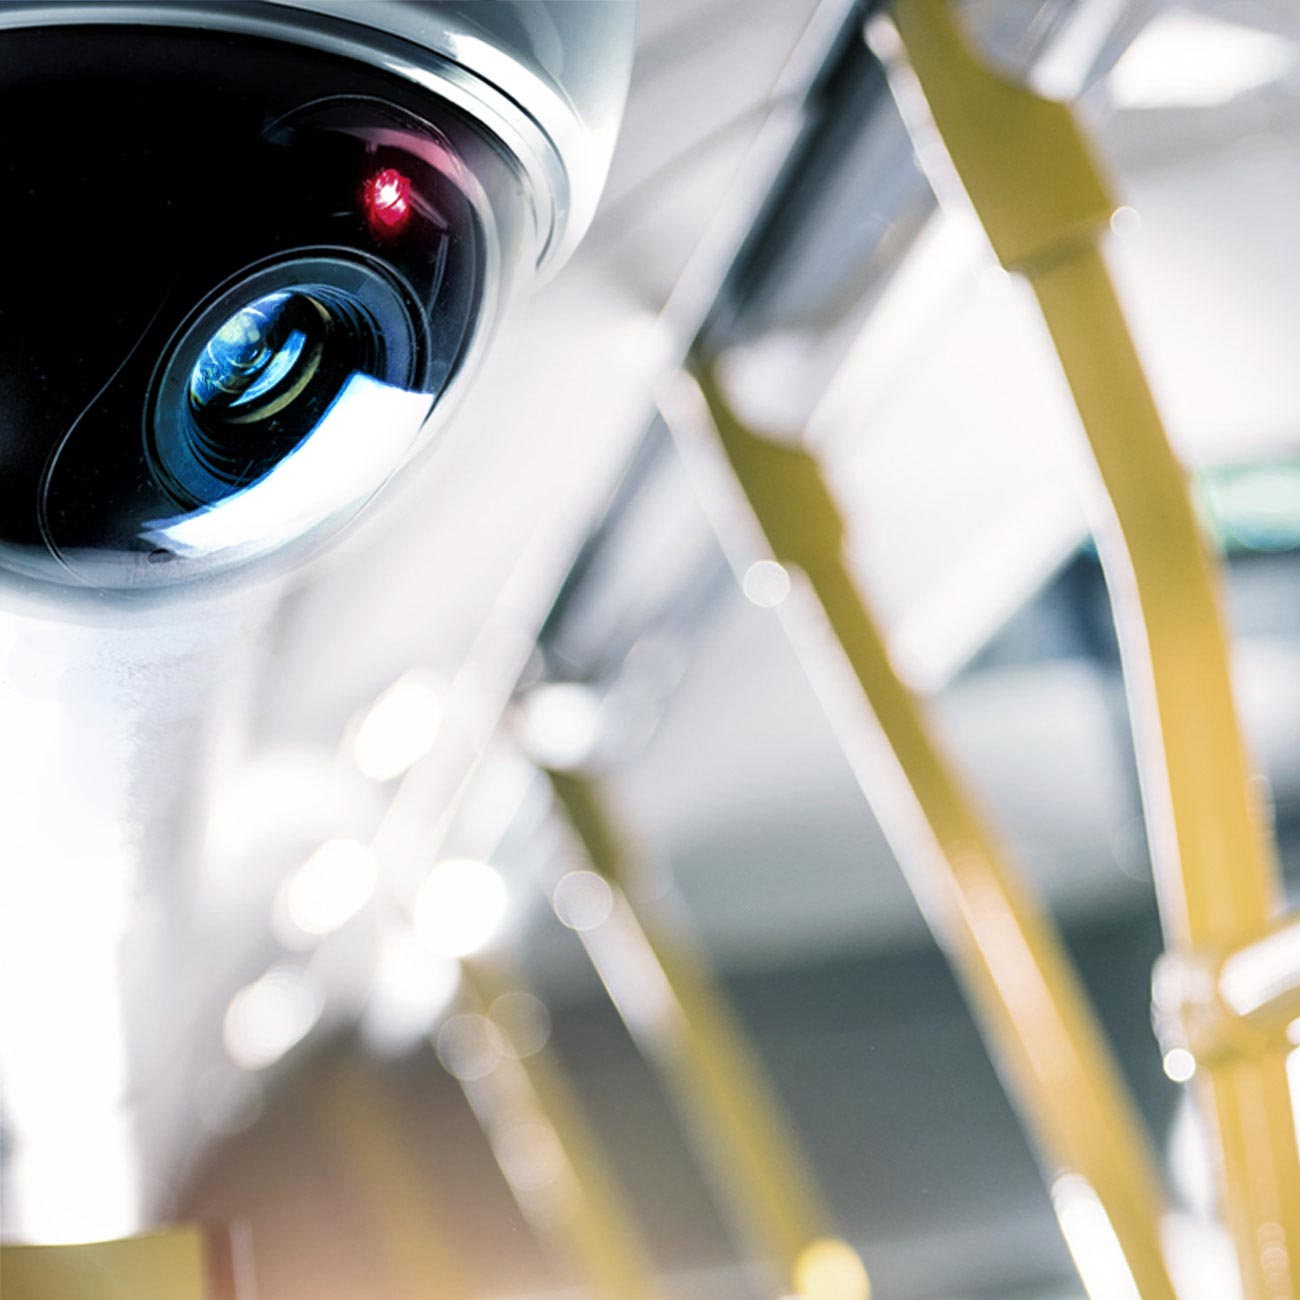 ON-BOARD VIDEO SECURITY SYSTEMS